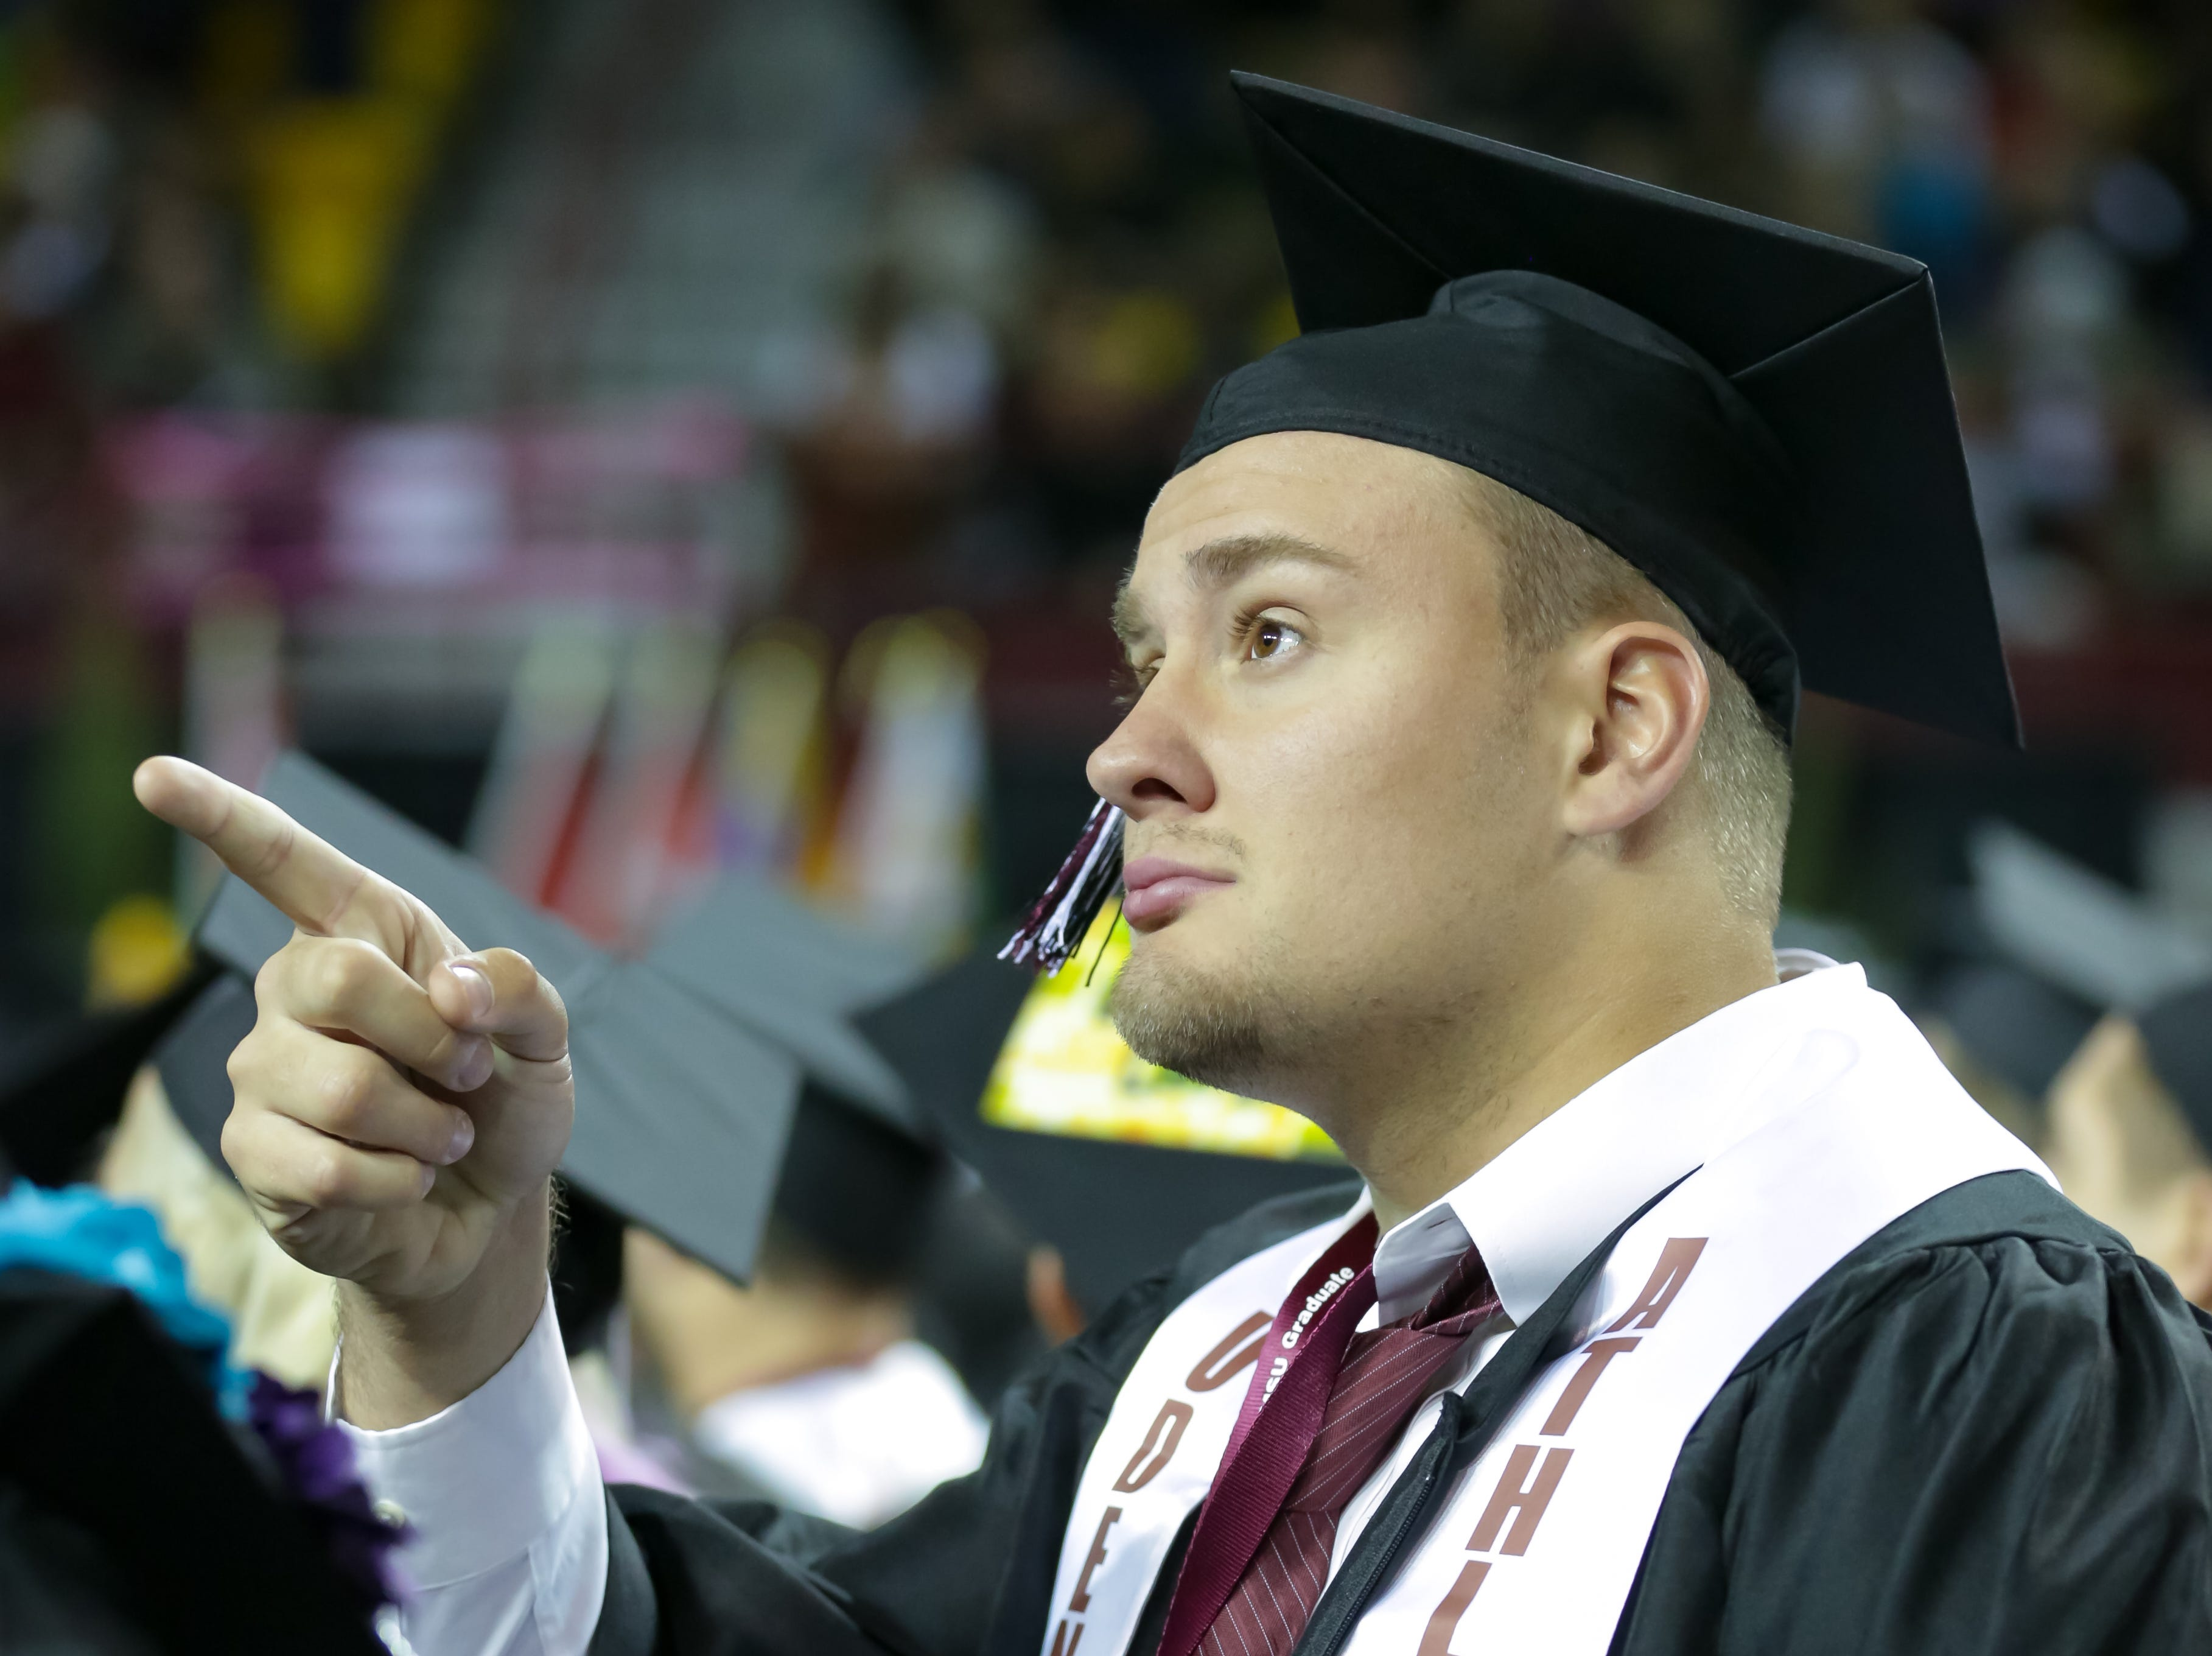 New Mexico State University's Jackson Solbeck points up at loved ones during the start of NMSU commencement ceremony on Saturday, Dec. 8, 2018 at the Pan American Center.